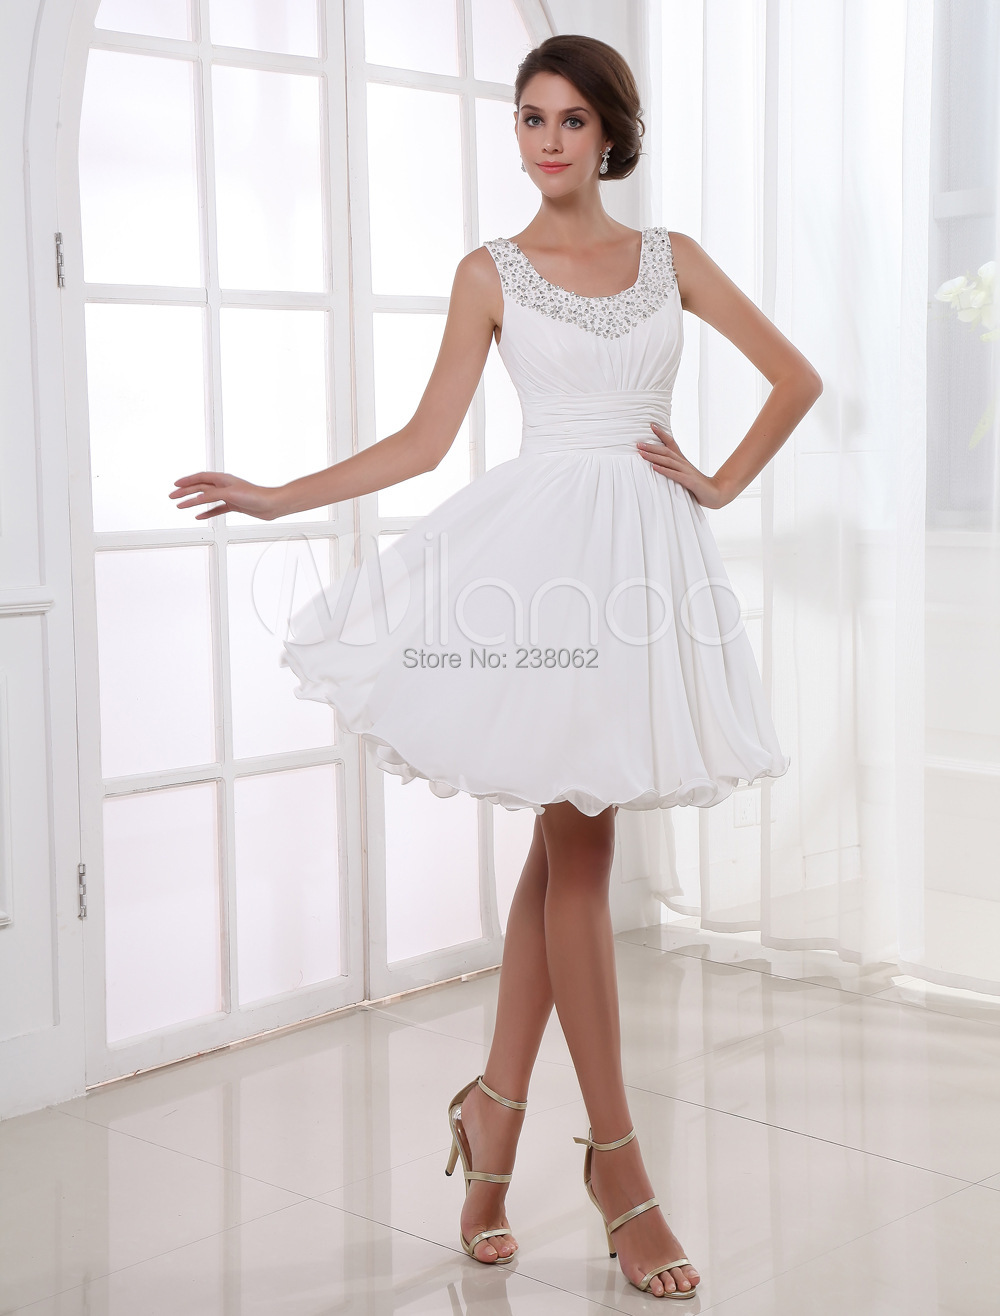 2015 High Quality White Short Chiffon Prom Dresses Beadin Formal Vestidos De Festa Evening Dress Party Dress Prom Gowns(China (Mainland))